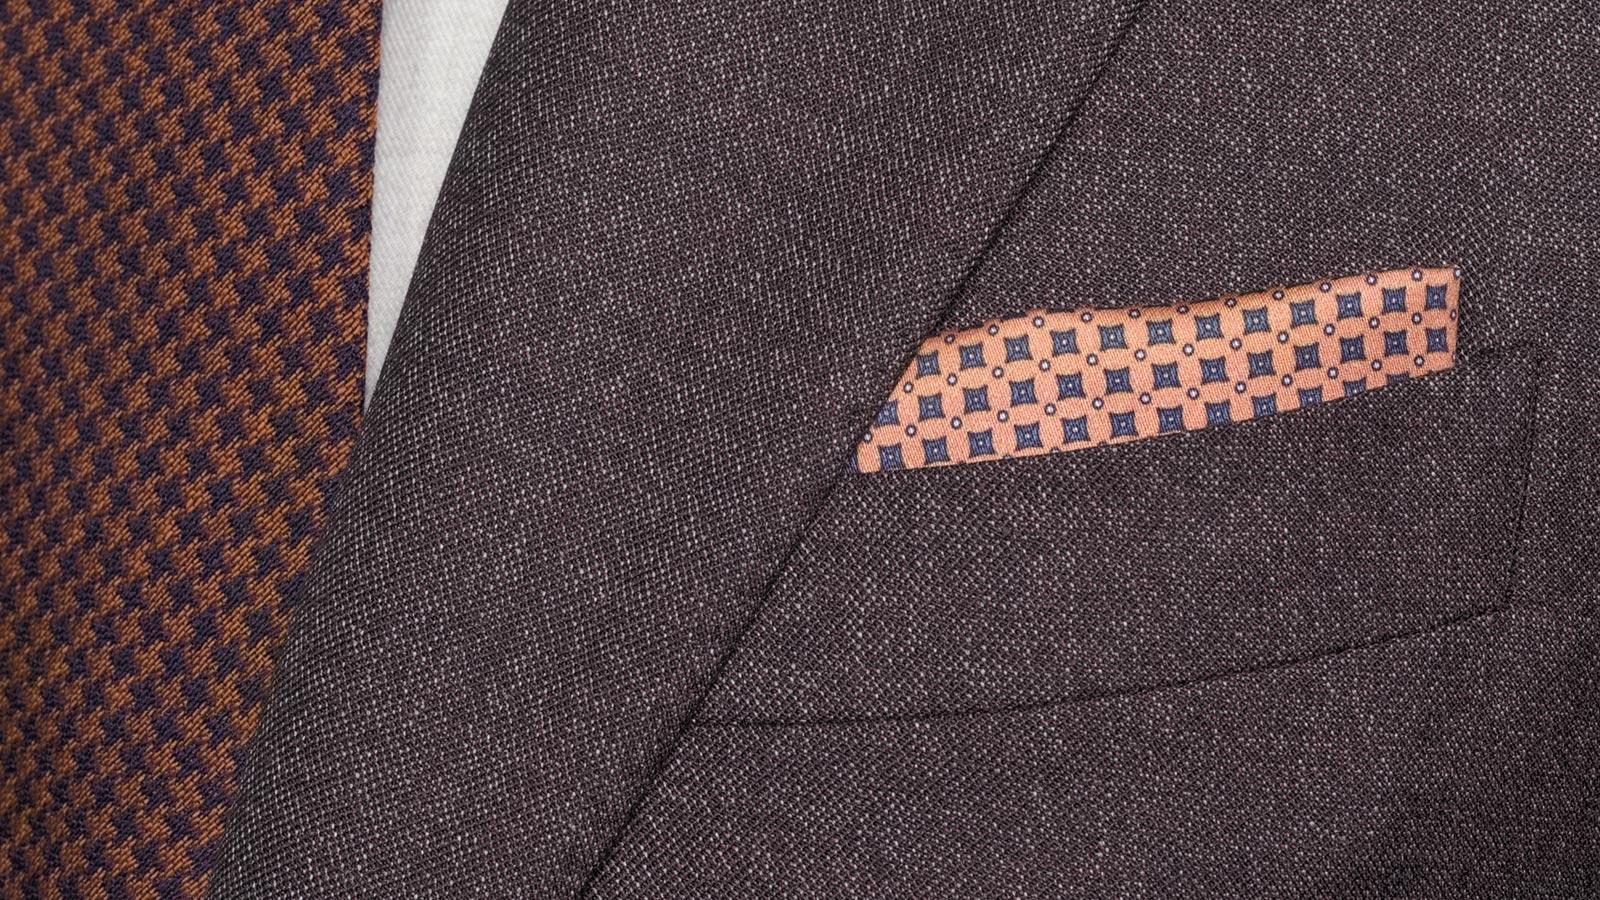 Burgundy and Brown Mouline Suit - slider image 1